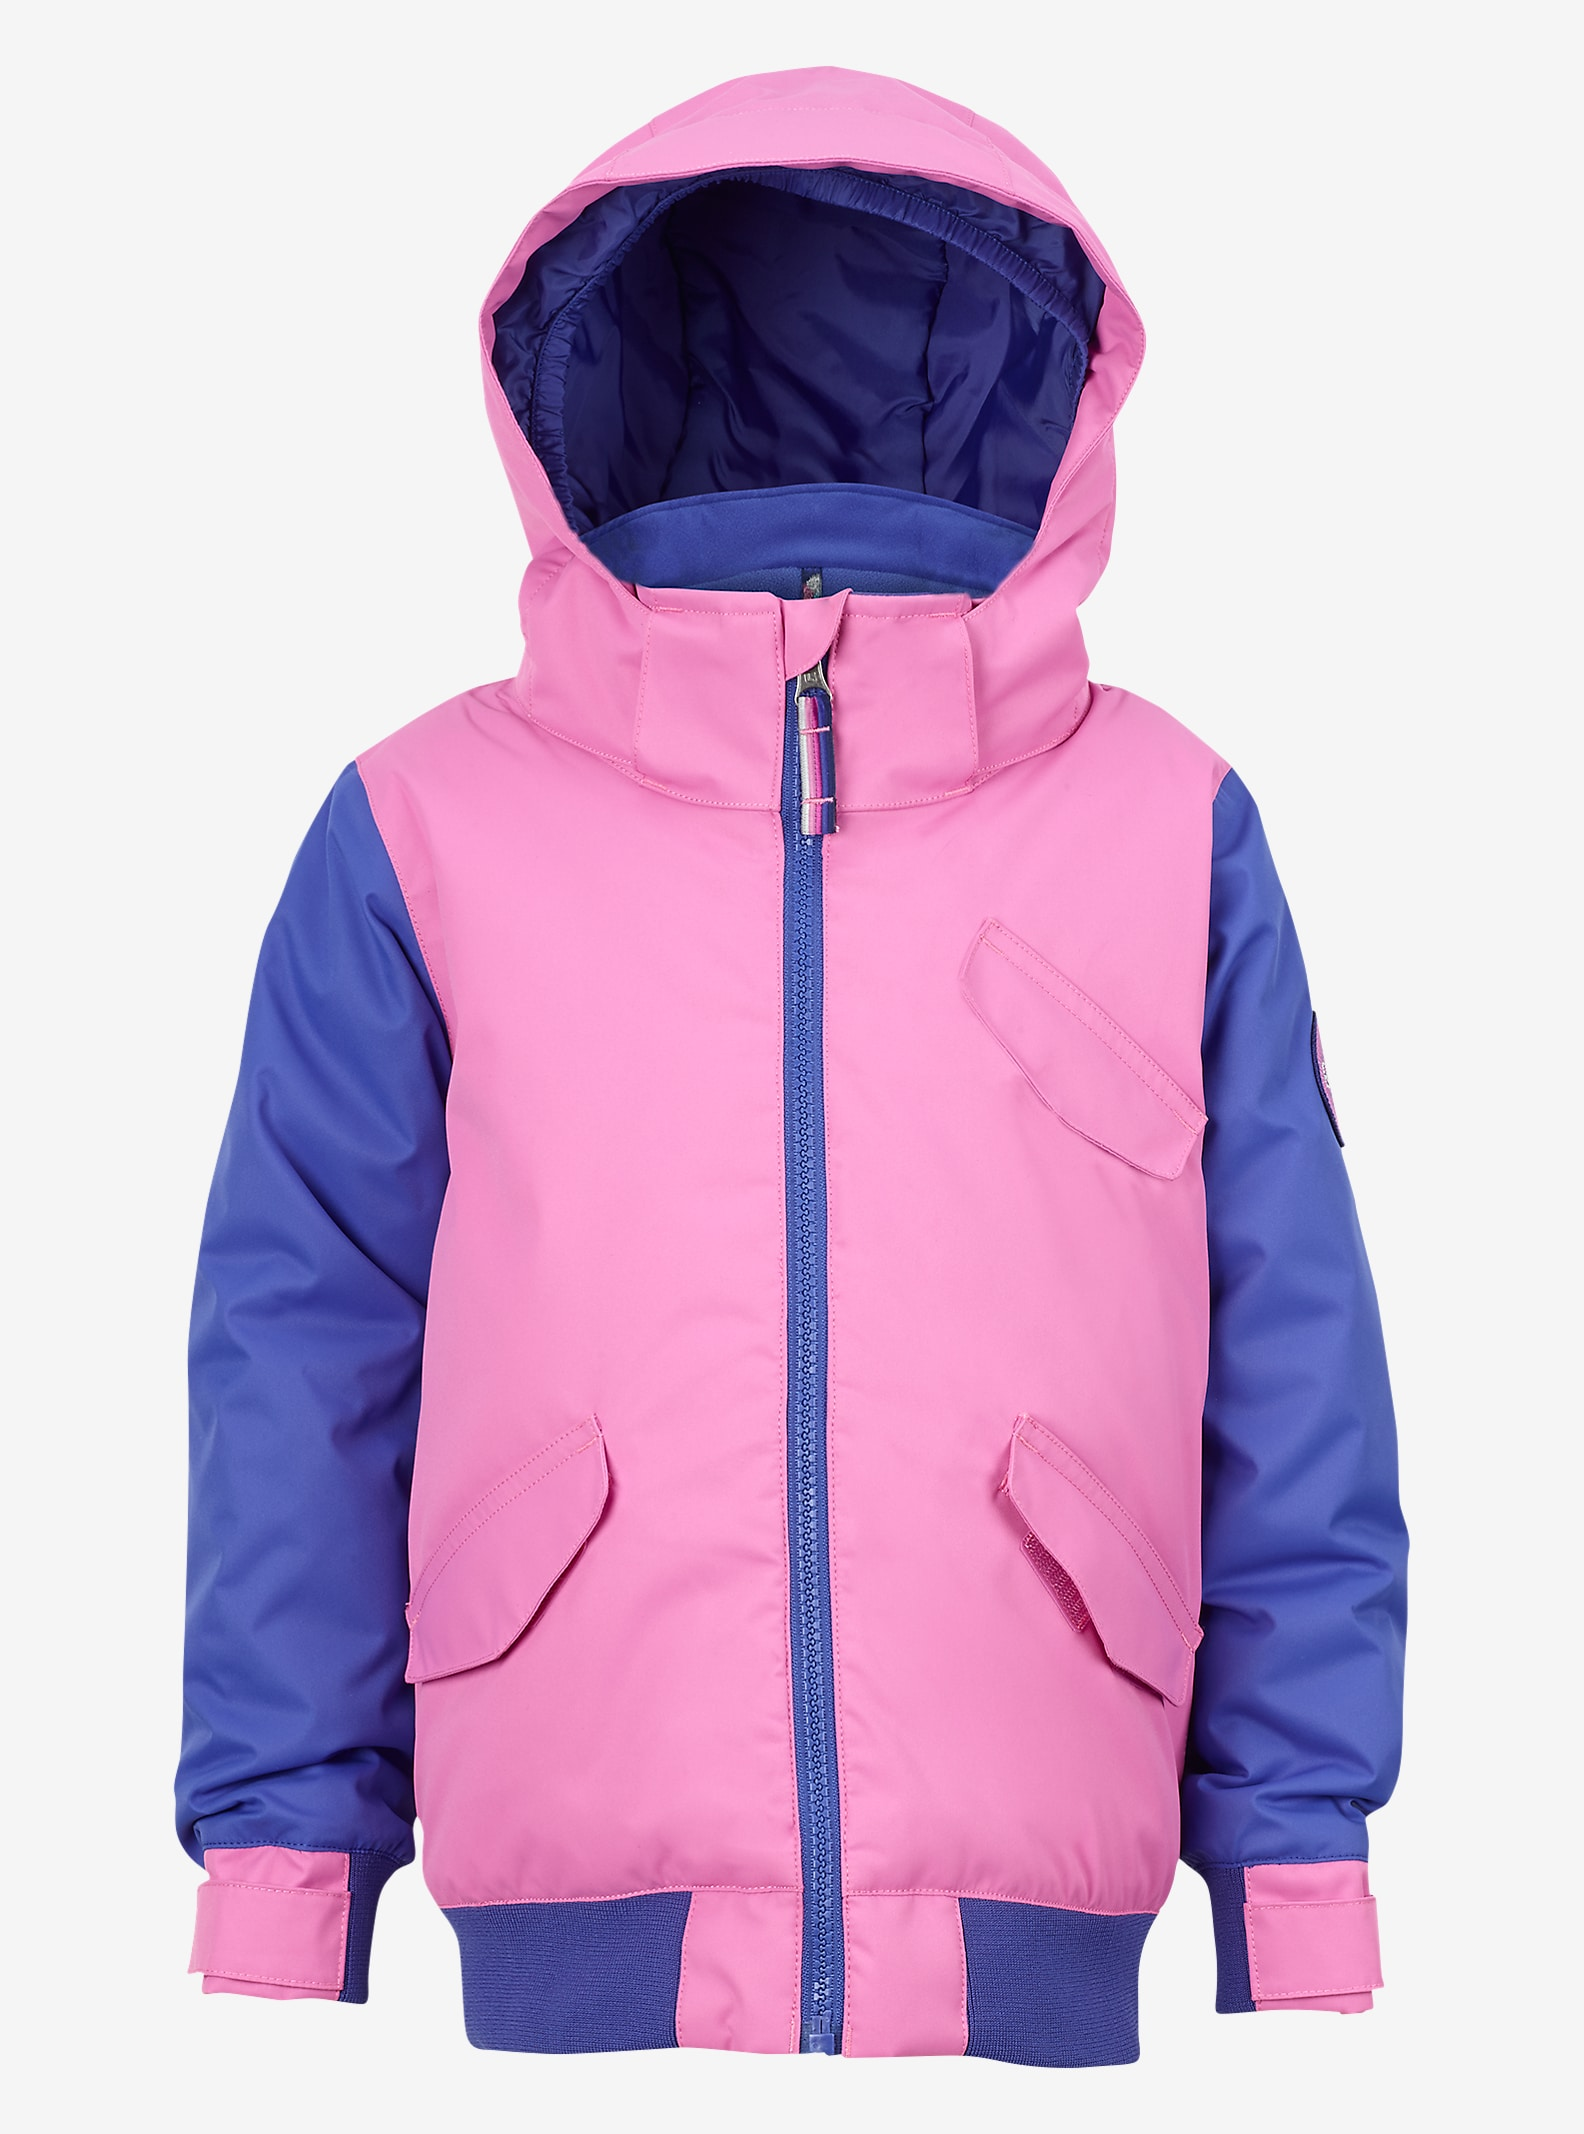 Burton Girls' Minishred Twist Bomber Jacket shown in Super Pink / Sorcerer